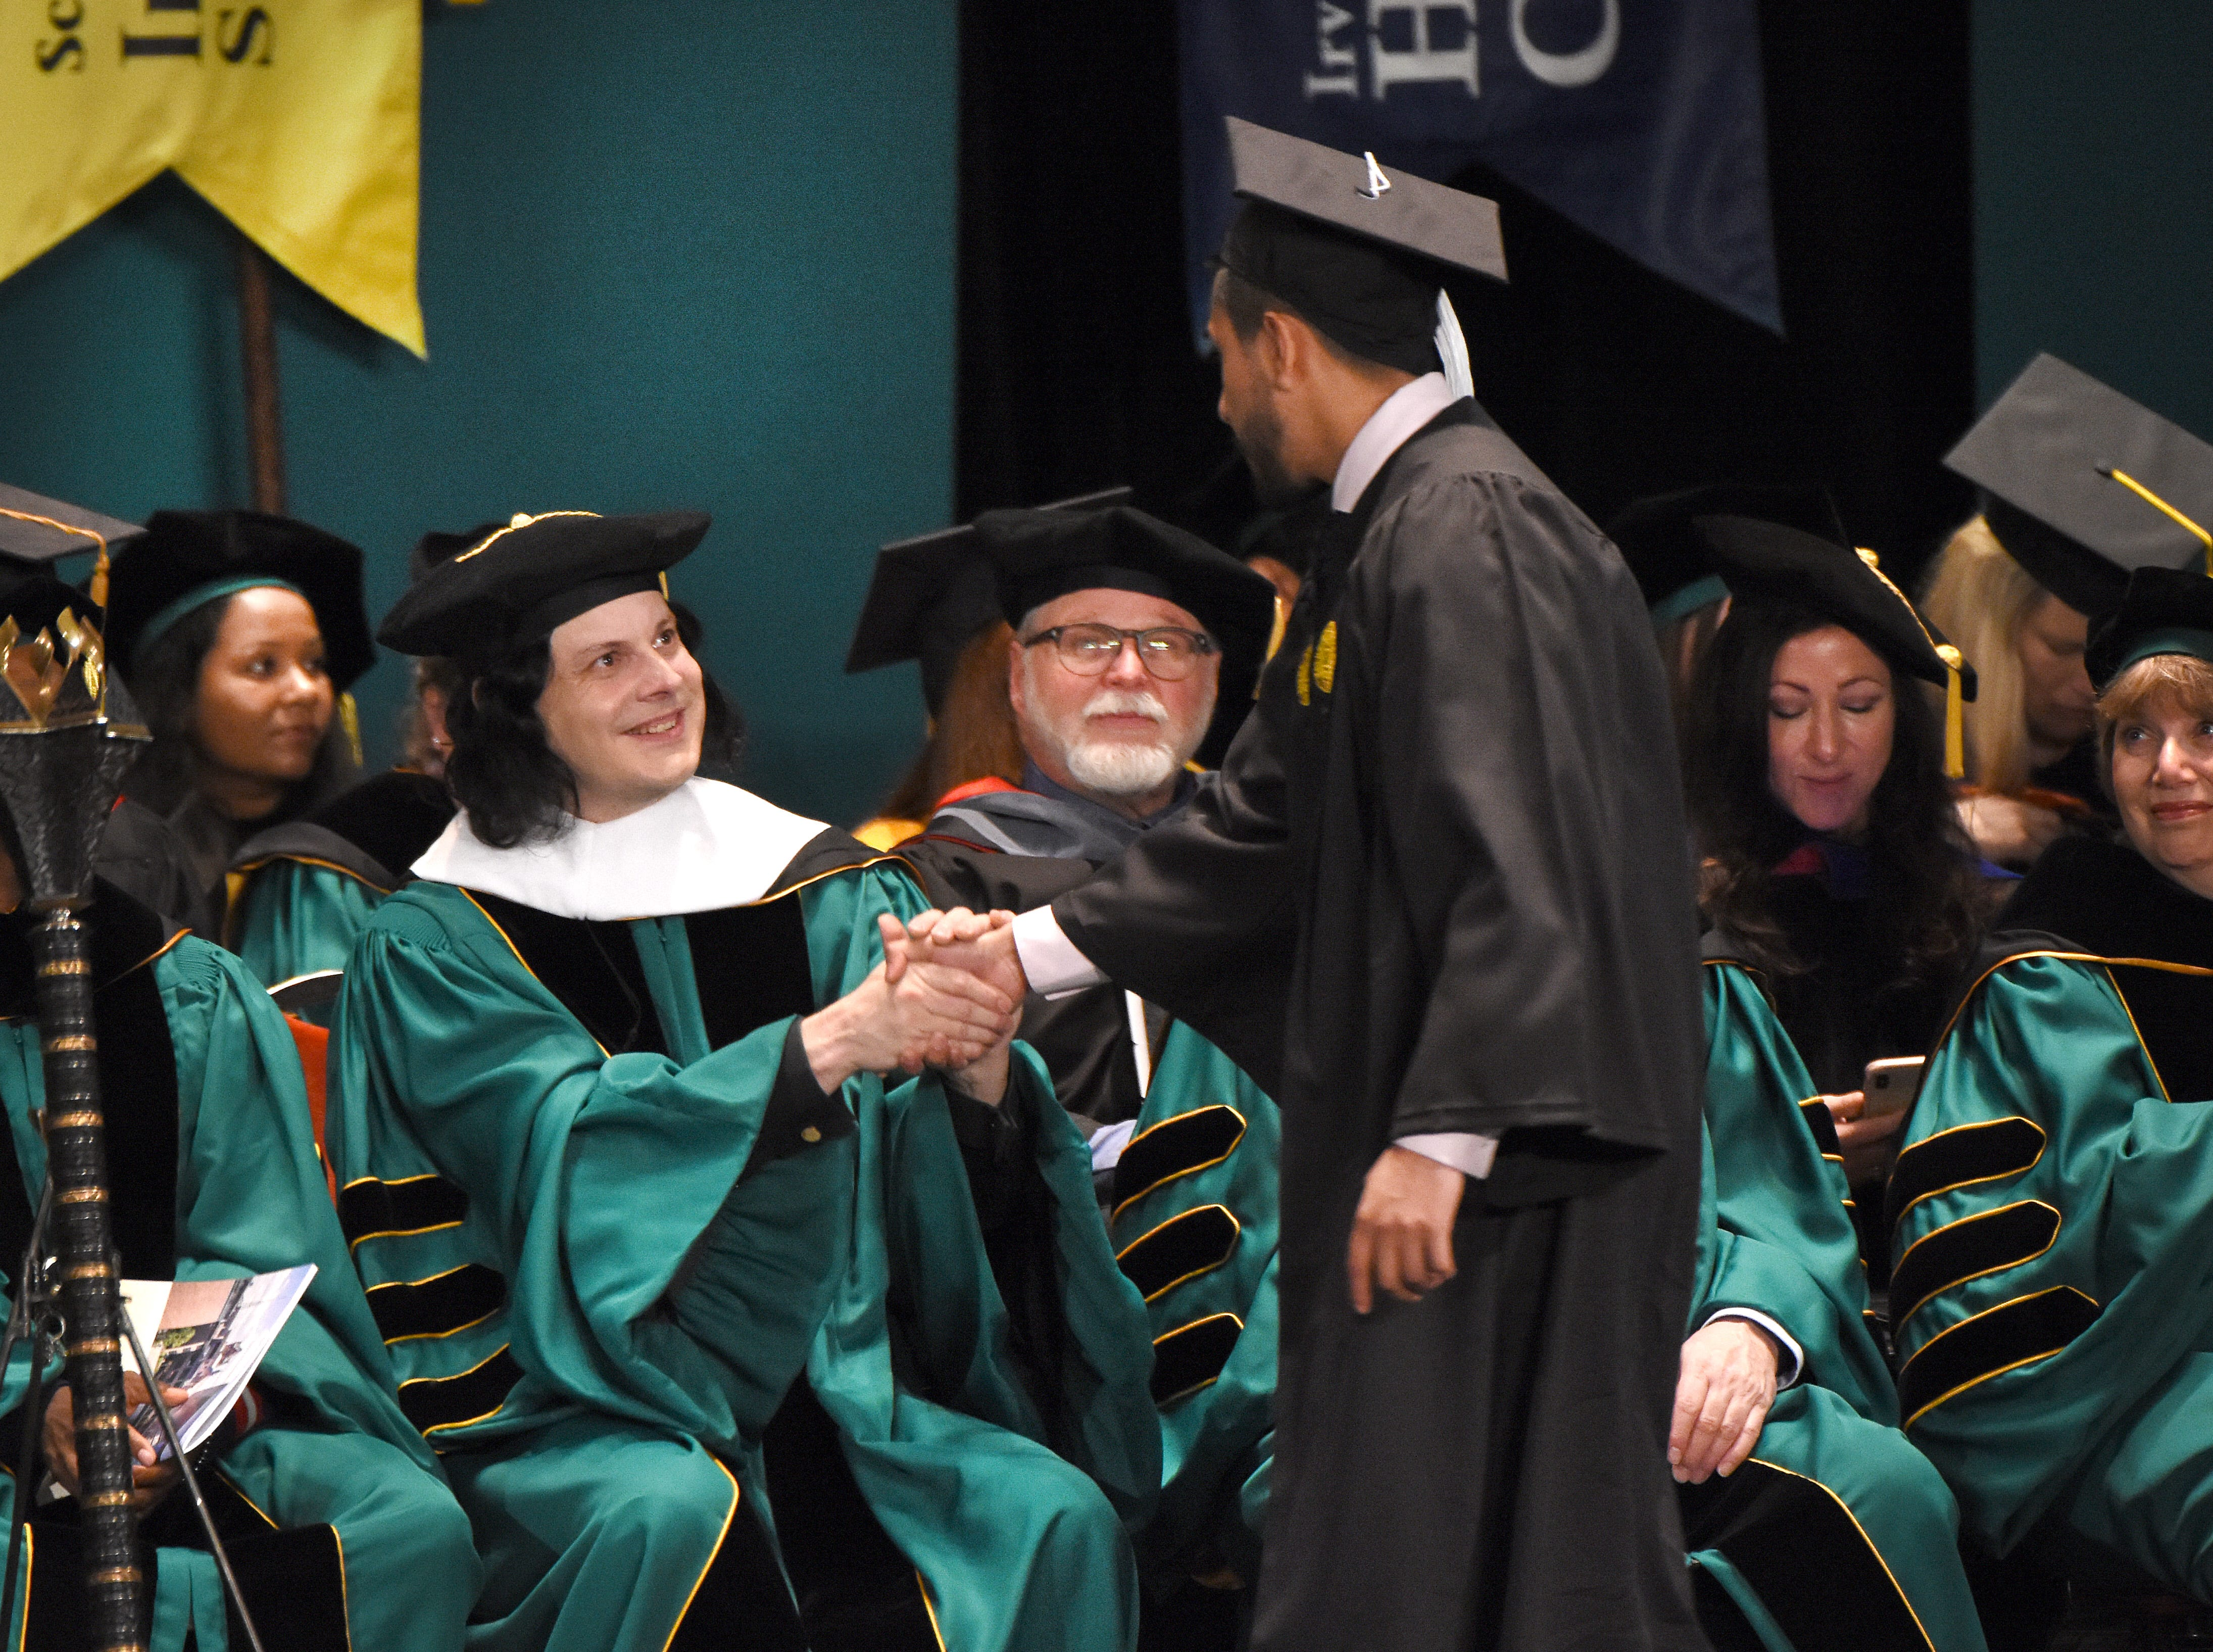 Musician Jack White shakes hands with graduates as they receive their degrees during Wayne State University commencement exercises at the Fox Theatre on Friday, May 3, 2019.